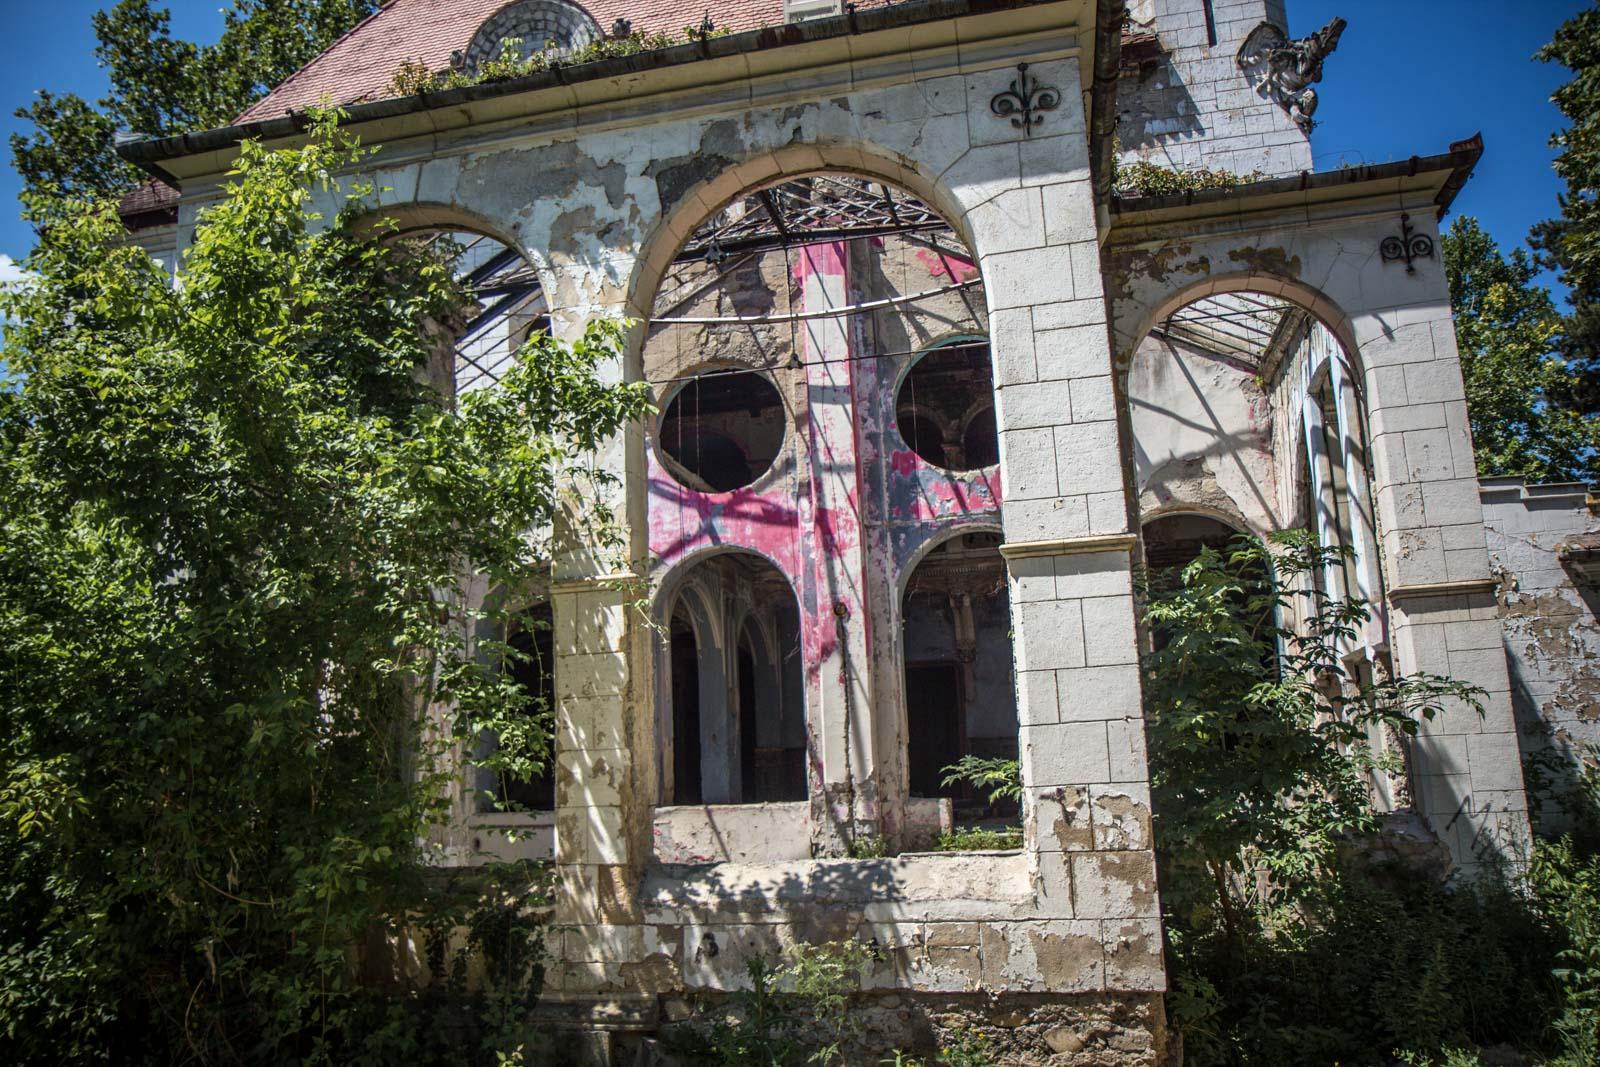 Abandoned house, Spitzer family house, Beočin, Serbia